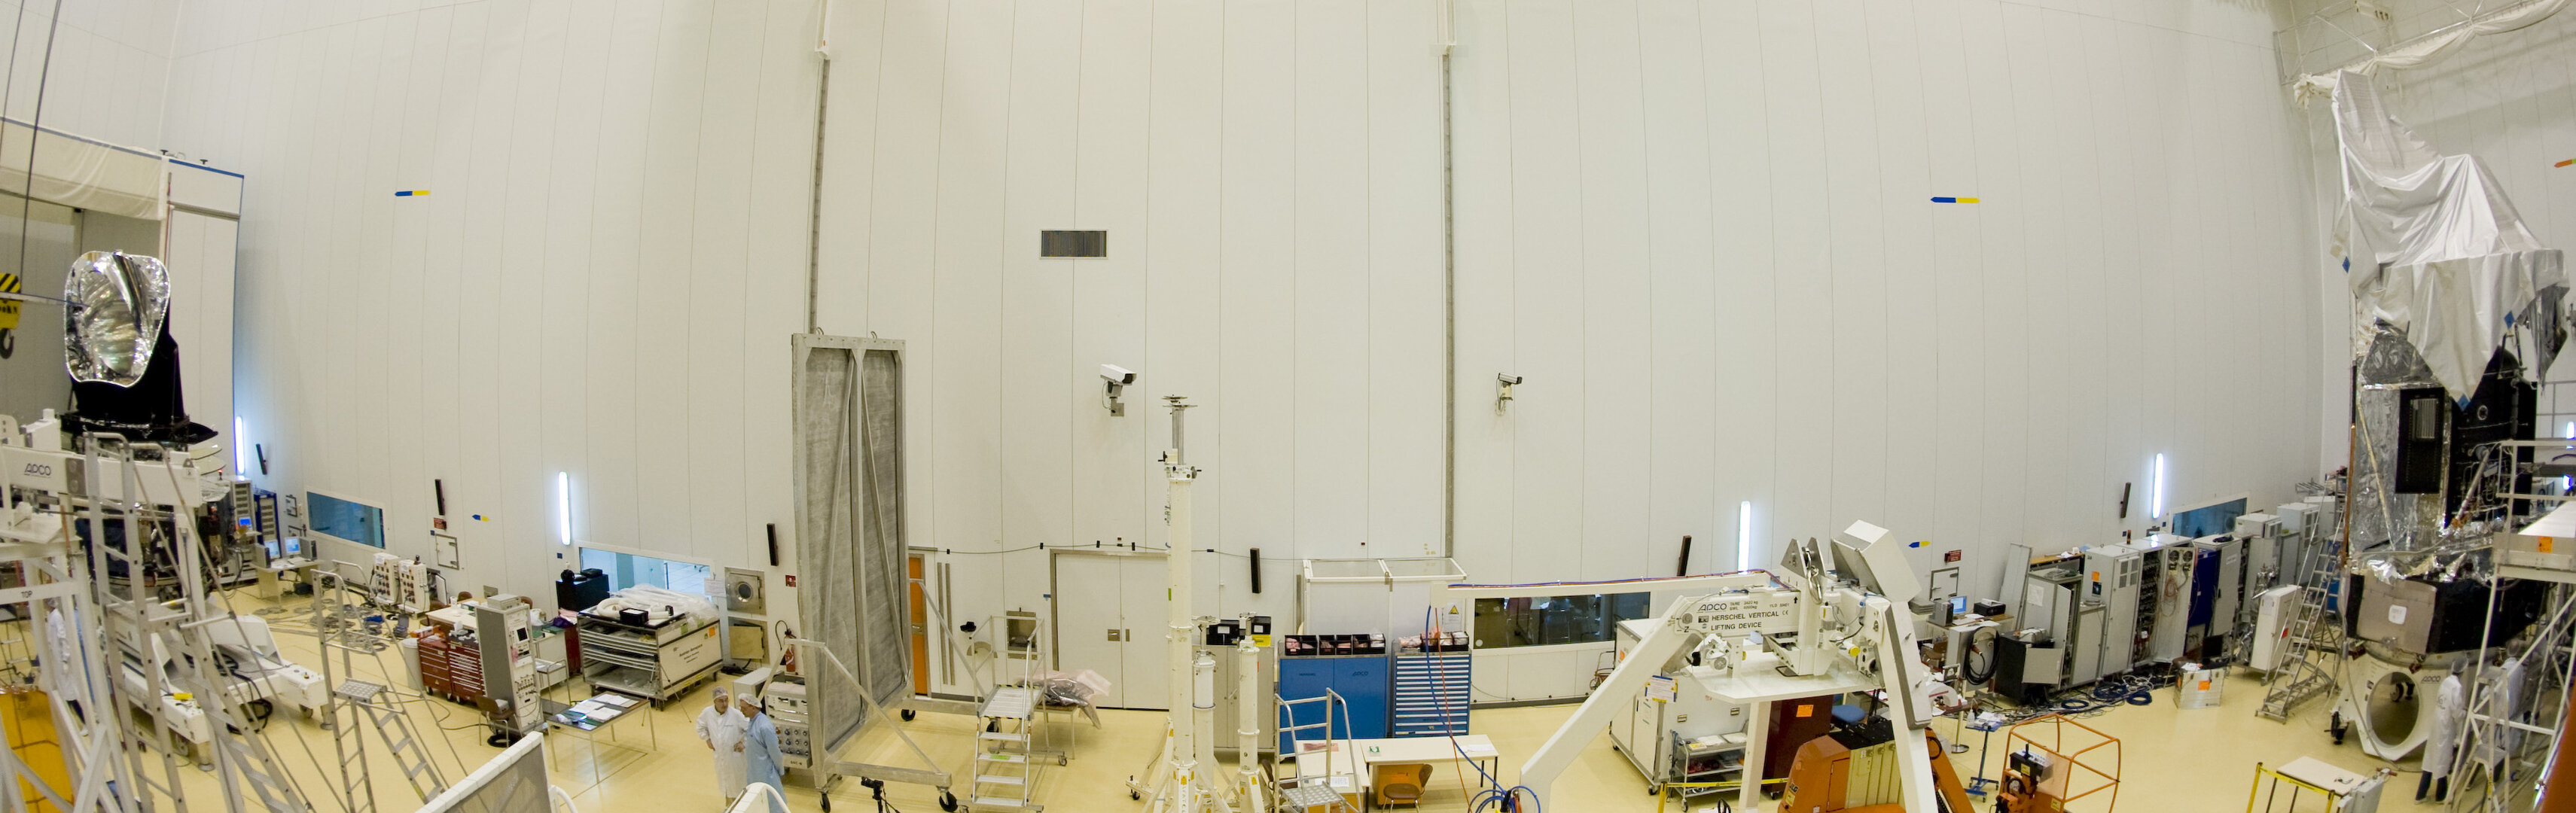 Fish-eye view of Herschel and Planck in a clean room at launch site